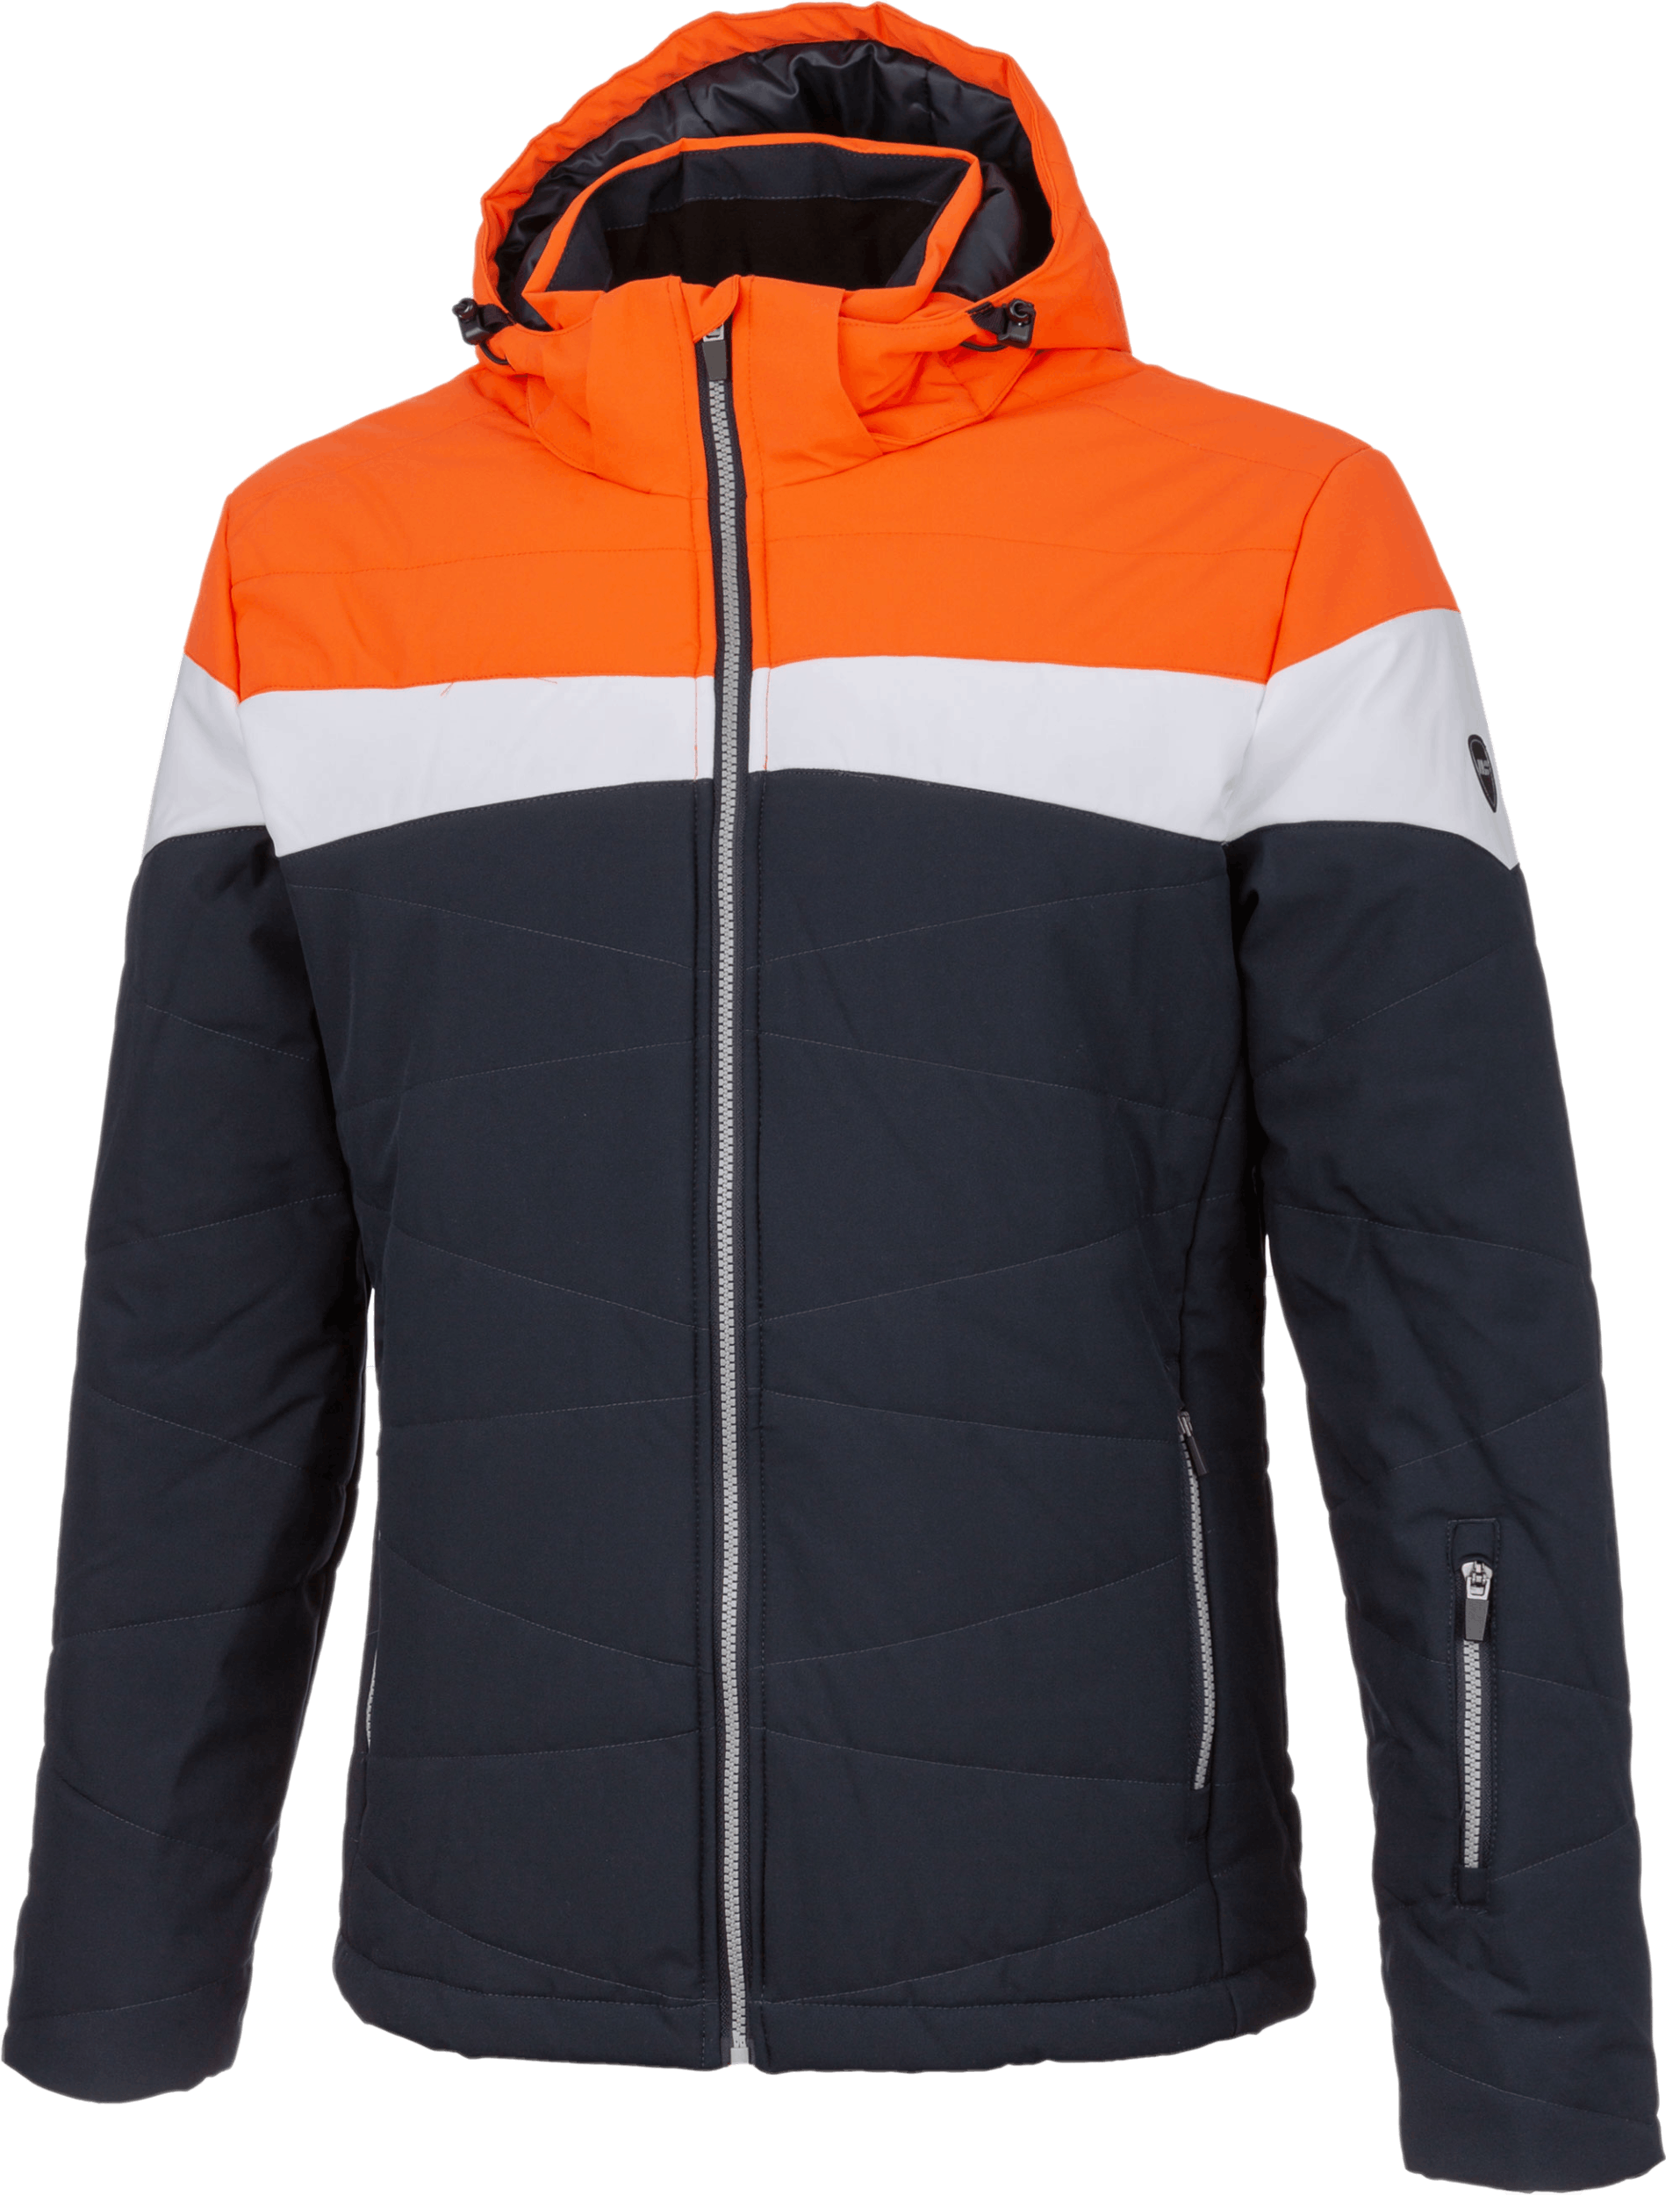 Hot Stuff Ski JKT Man - Skijacke - Herren